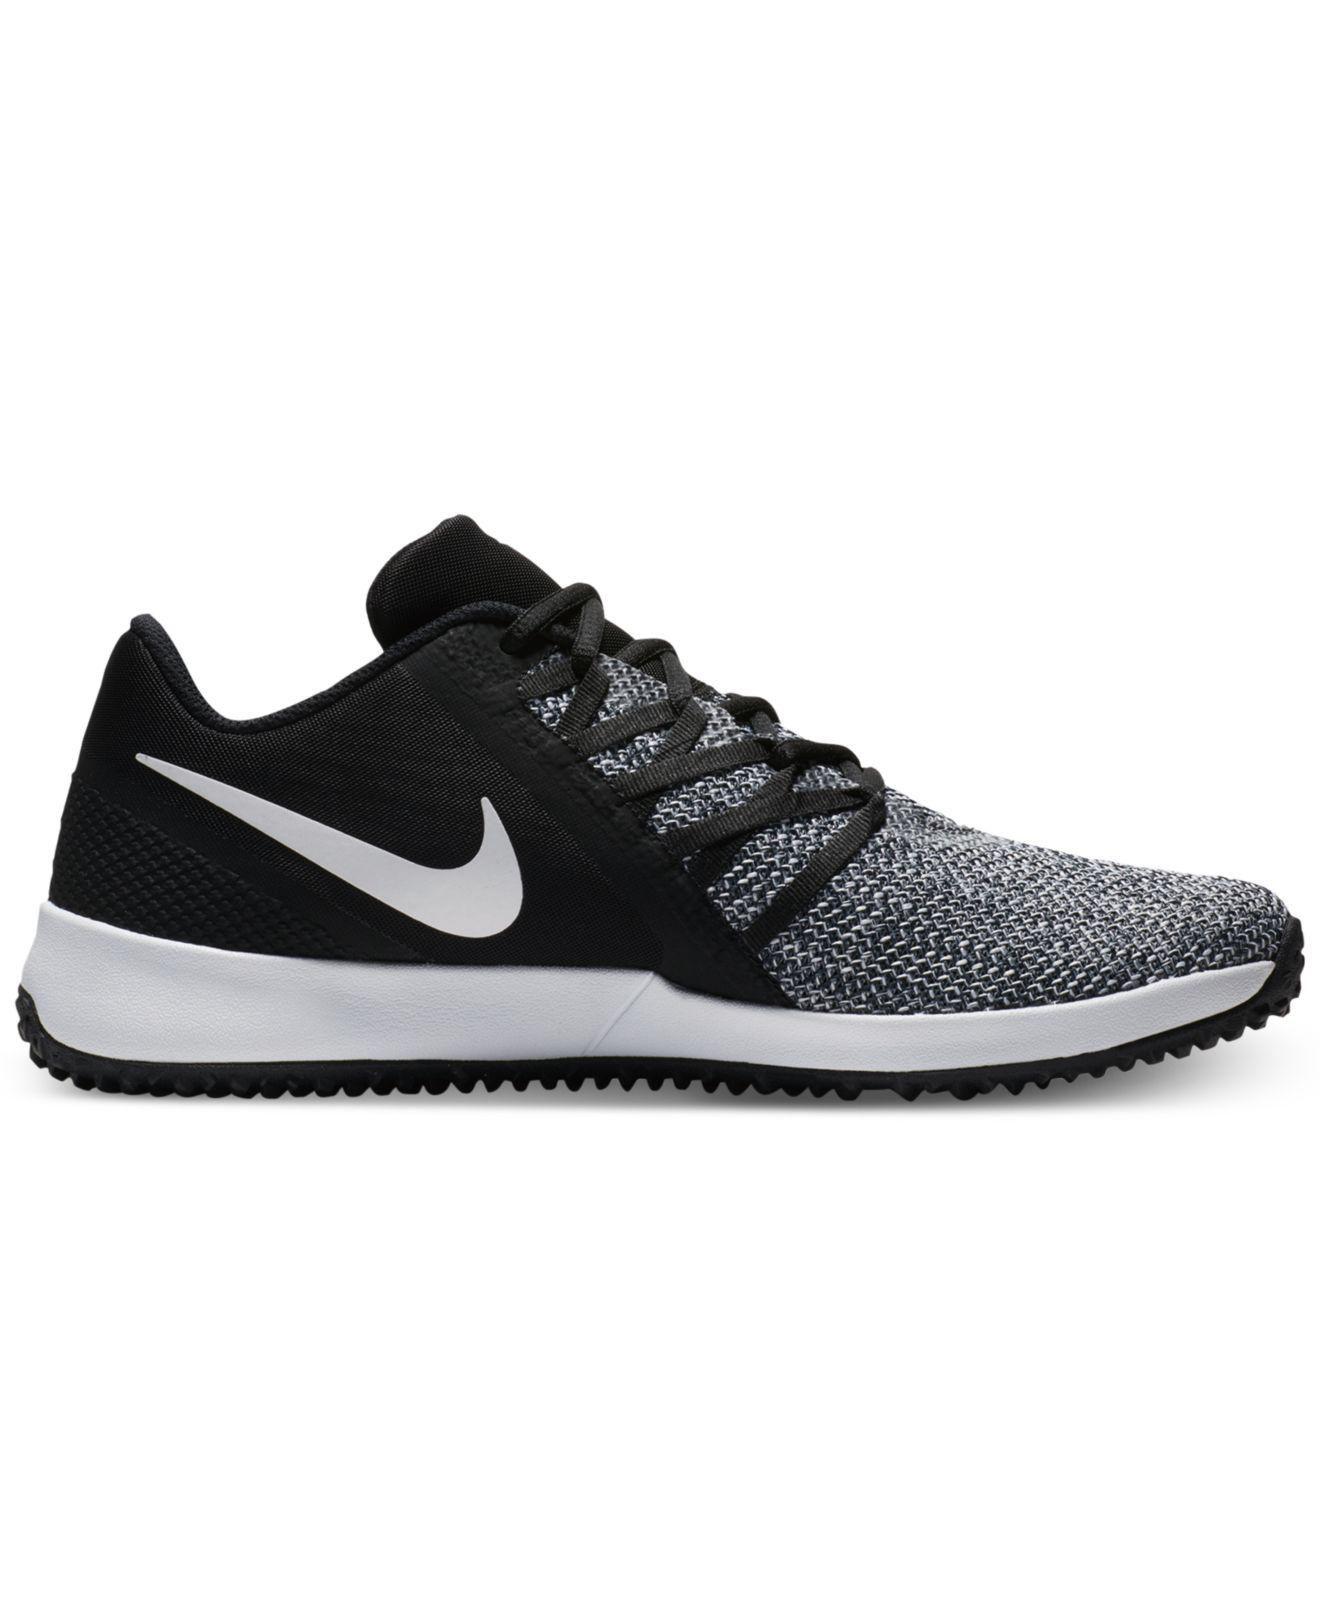 Nike. Men's Black Varsity Compete Trainer Training Sneakers From Finish Line